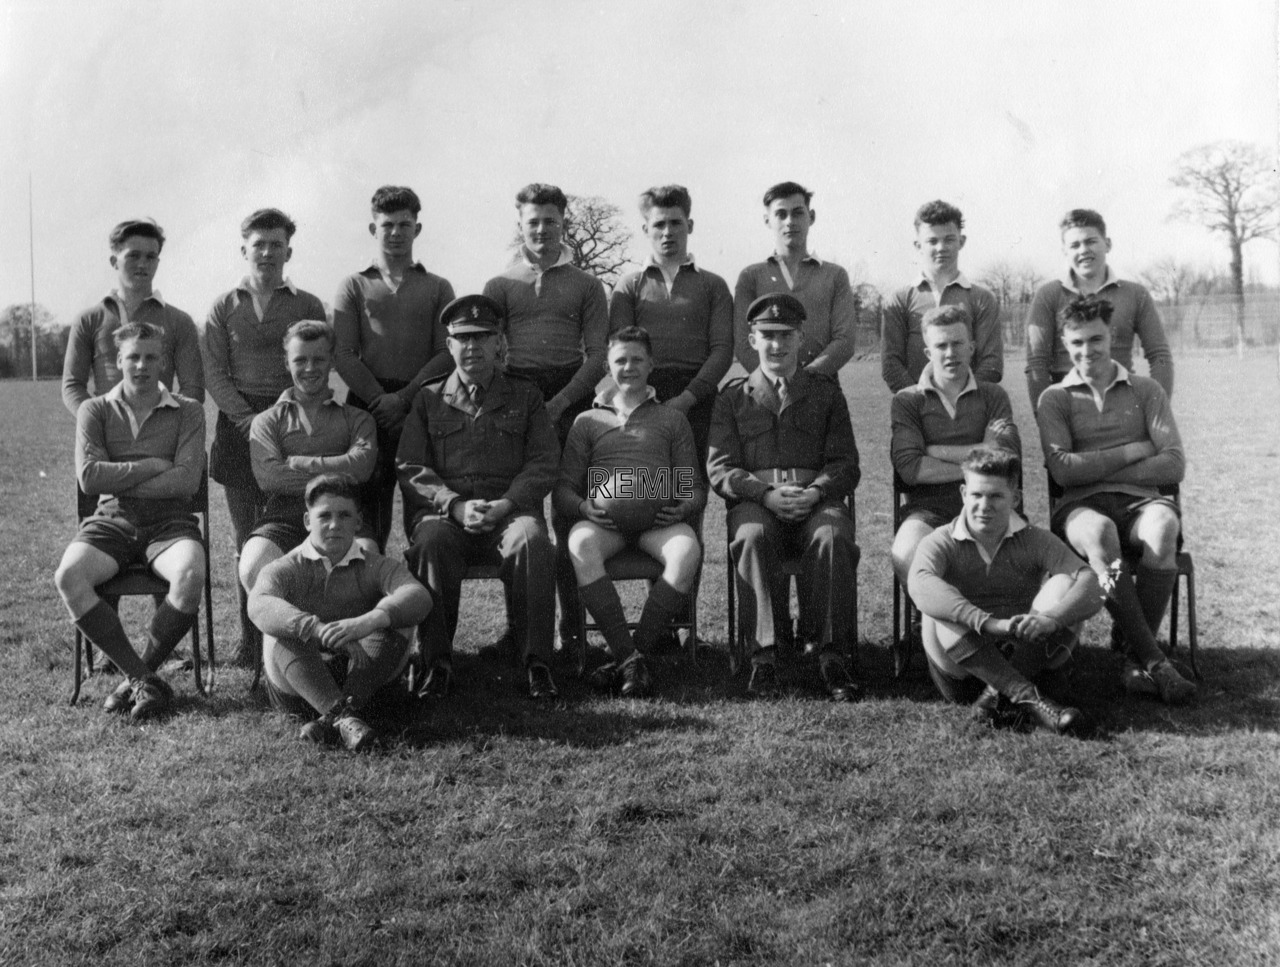 Junior Leaders' Unit REME: Rugby Union XV, 1960 – 1961